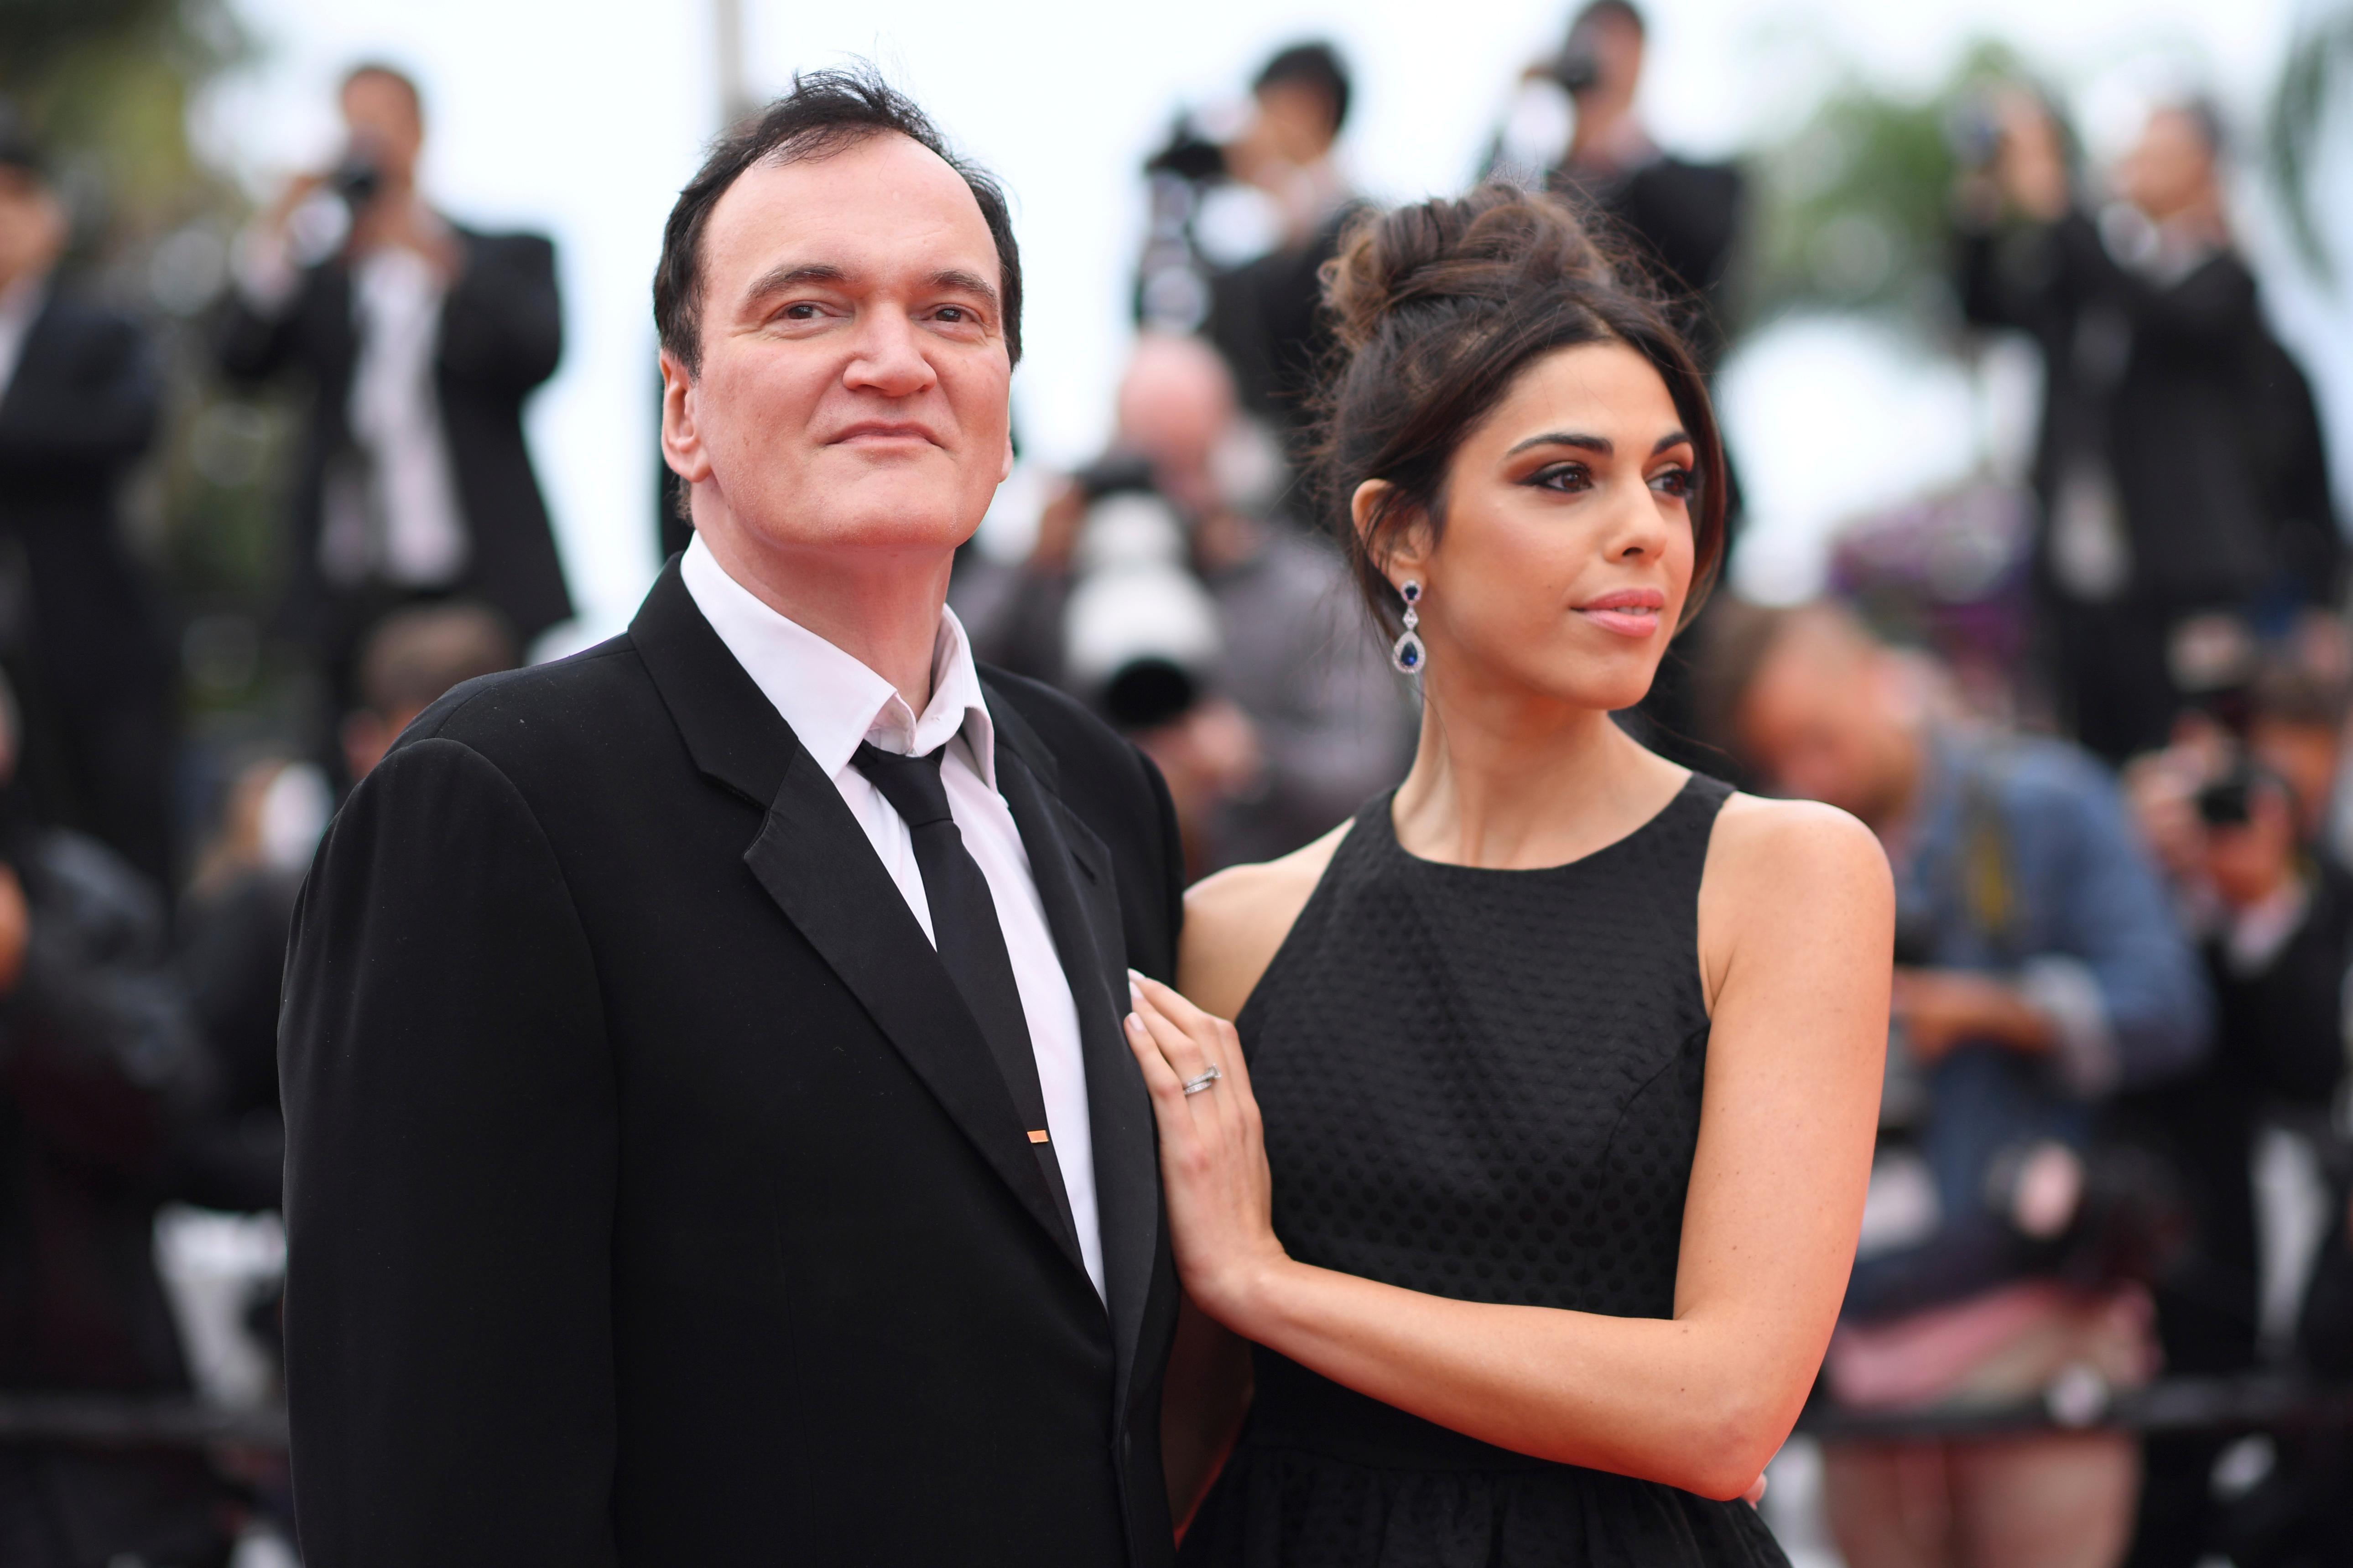 Film director Quentin Tarantino and his wife Daniela Pick pose for photographers upon arrival at the premiere of the film 'The Wild Goose Lake' at the 72nd international film festival, Cannes, southern France, Saturday, May 18, 2019. (Photo by Arthur Mola/Invision/AP)